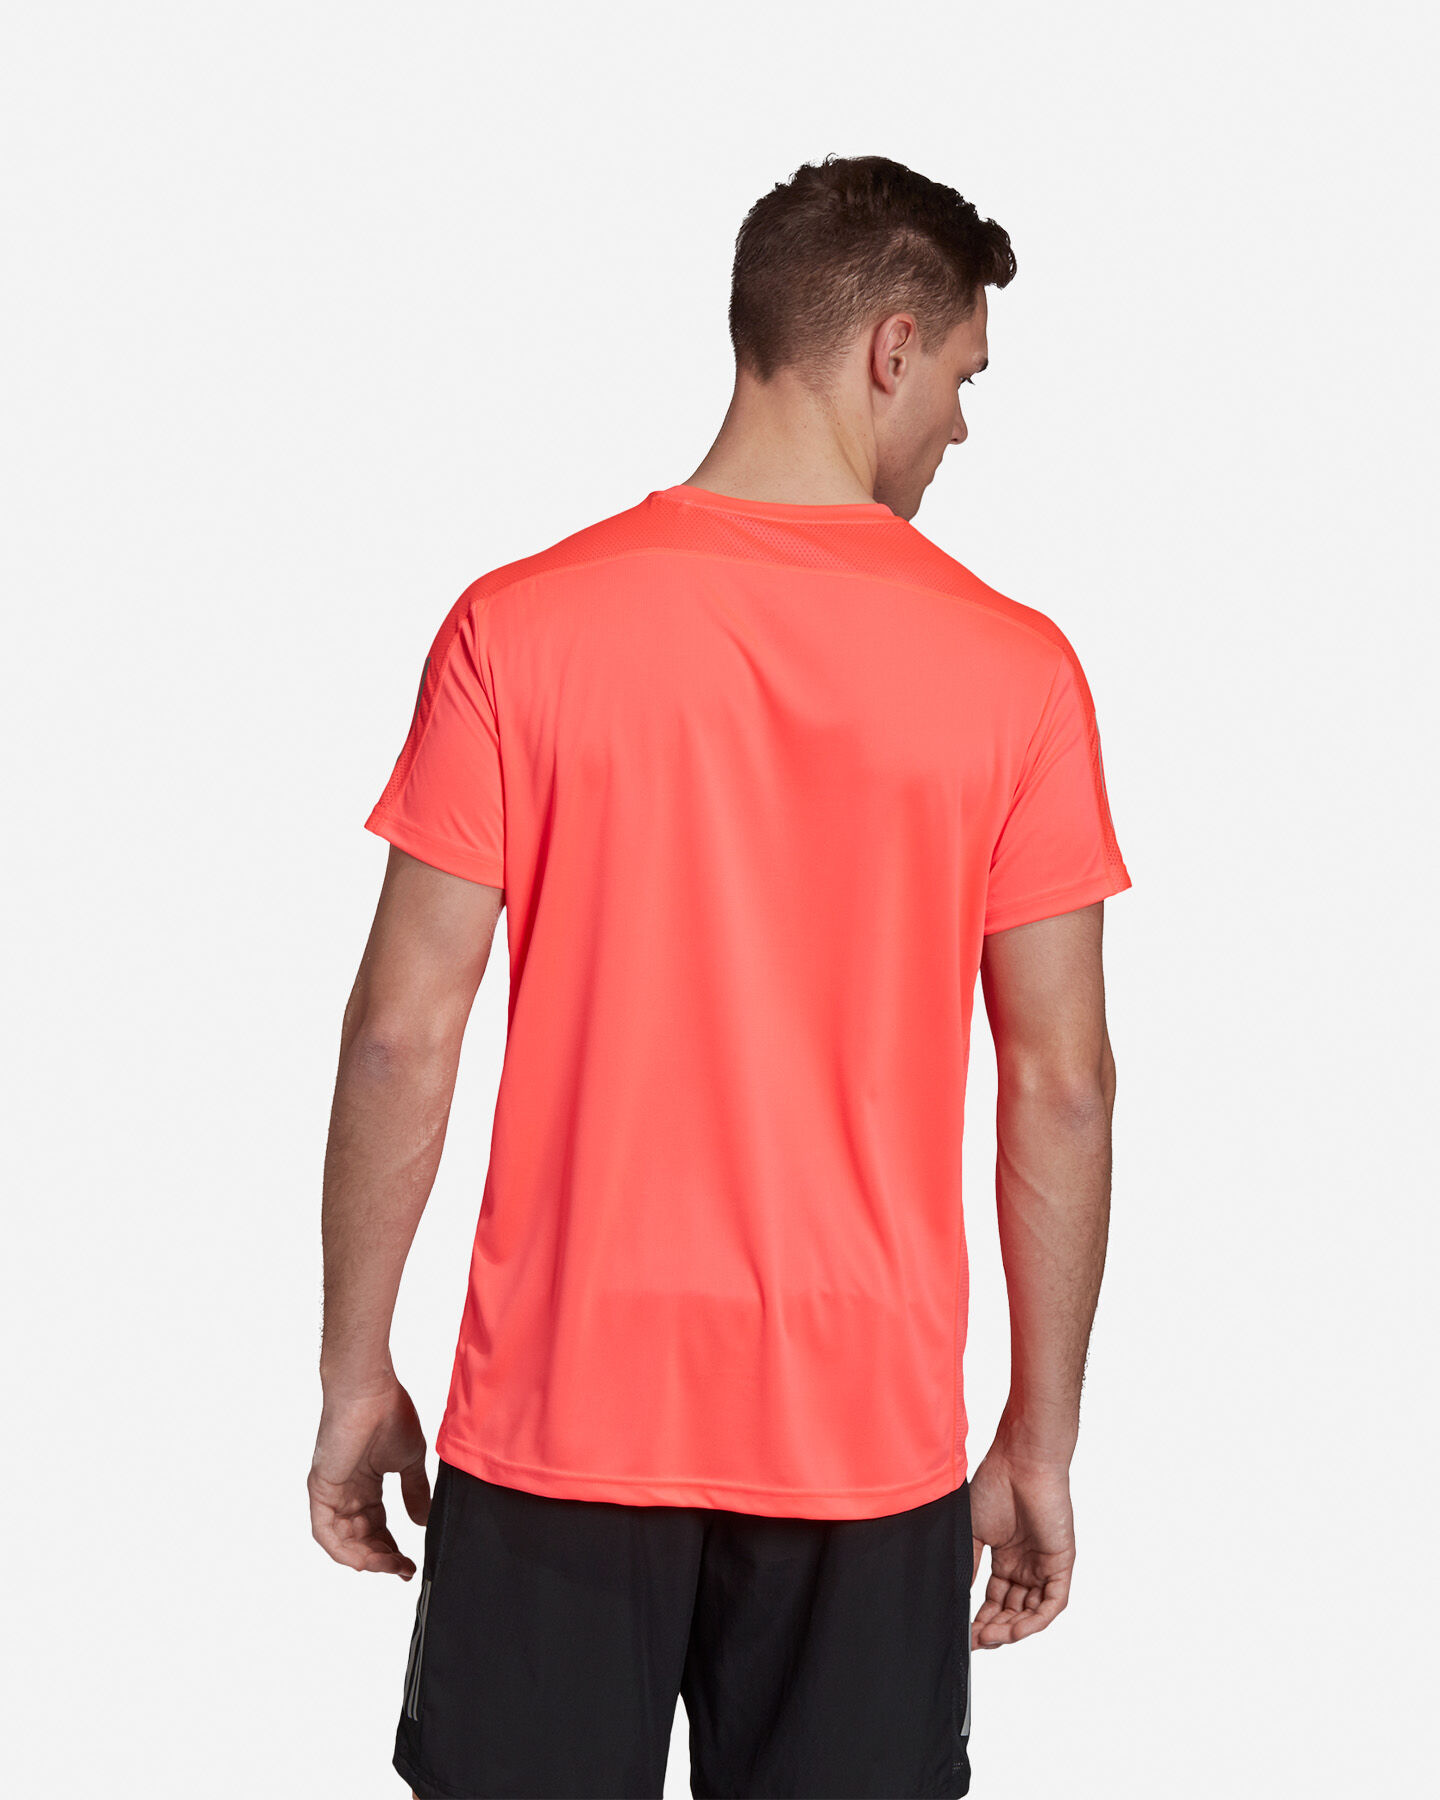 T-Shirt running ADIDAS OWN THE RUN M S5210034 scatto 4